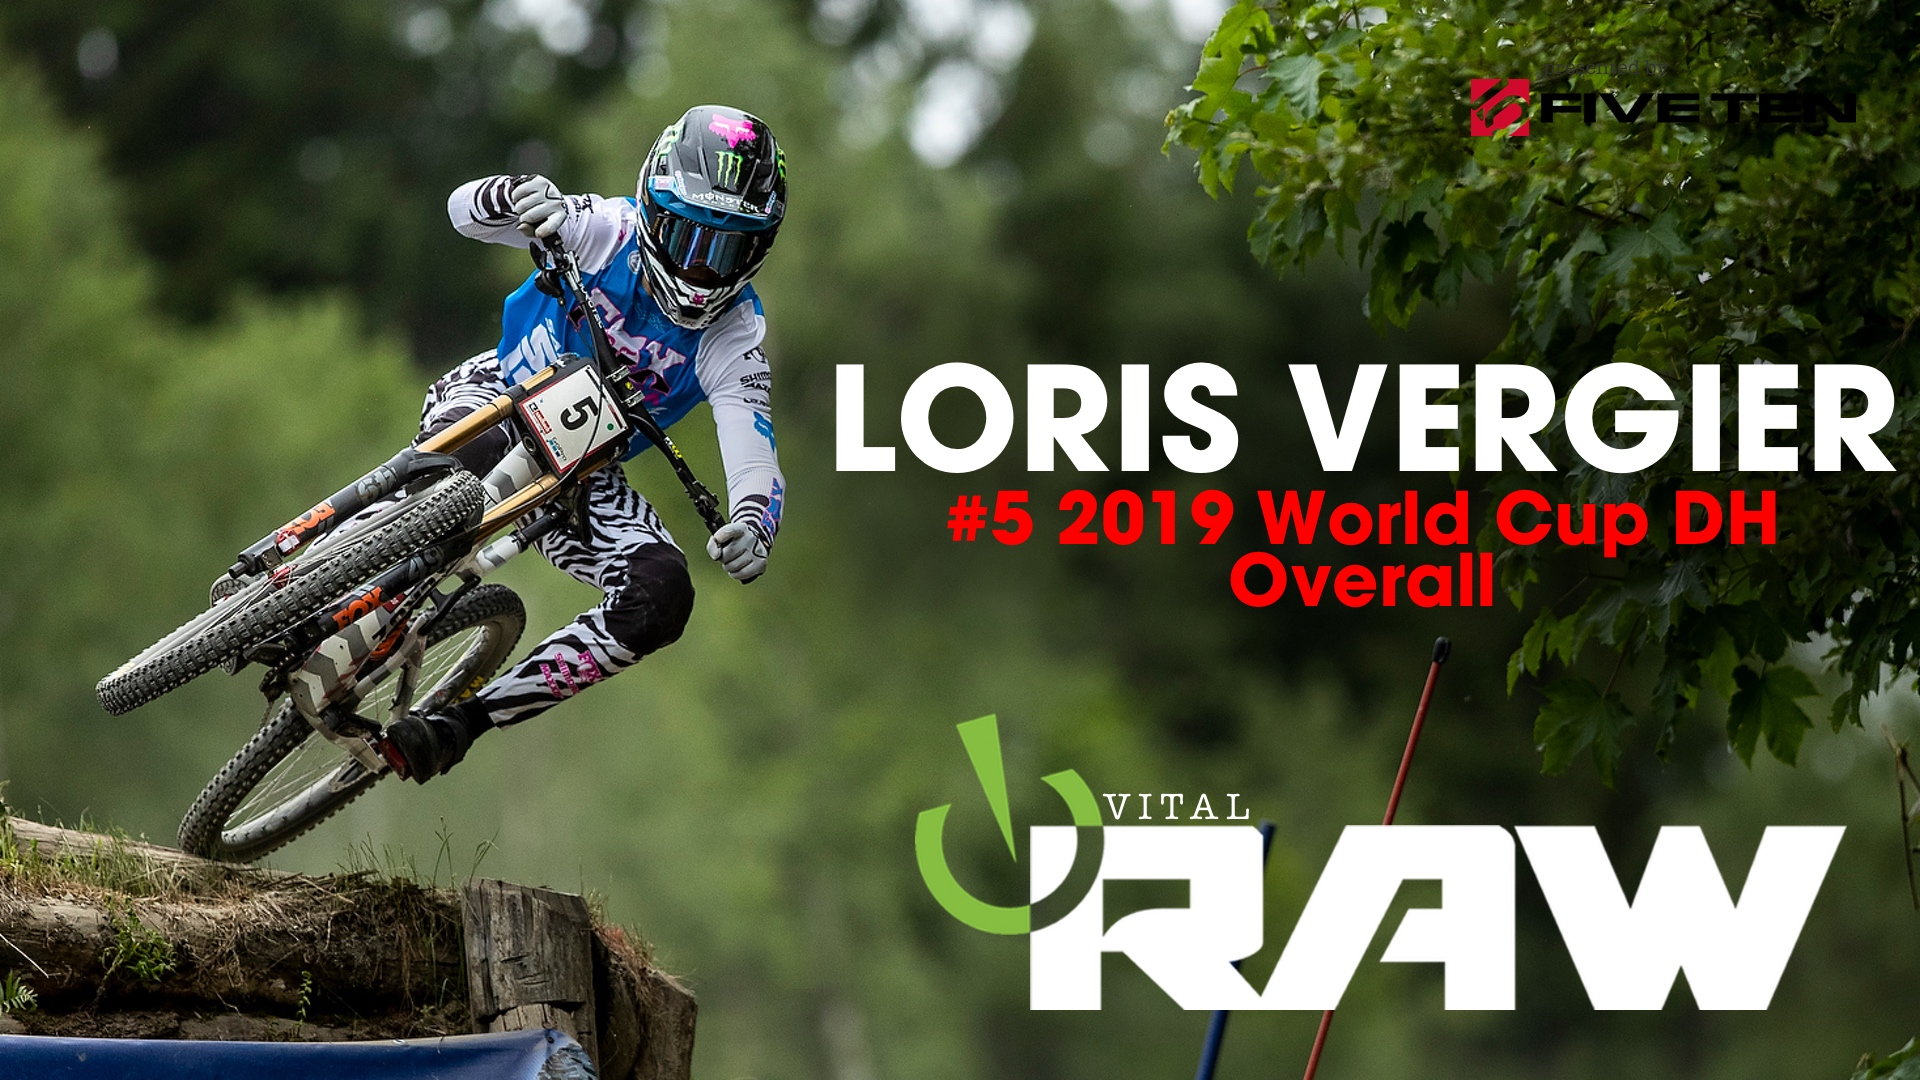 VITAL RAW - Loris Vergier, #5 - 2019 World Cup Downhill